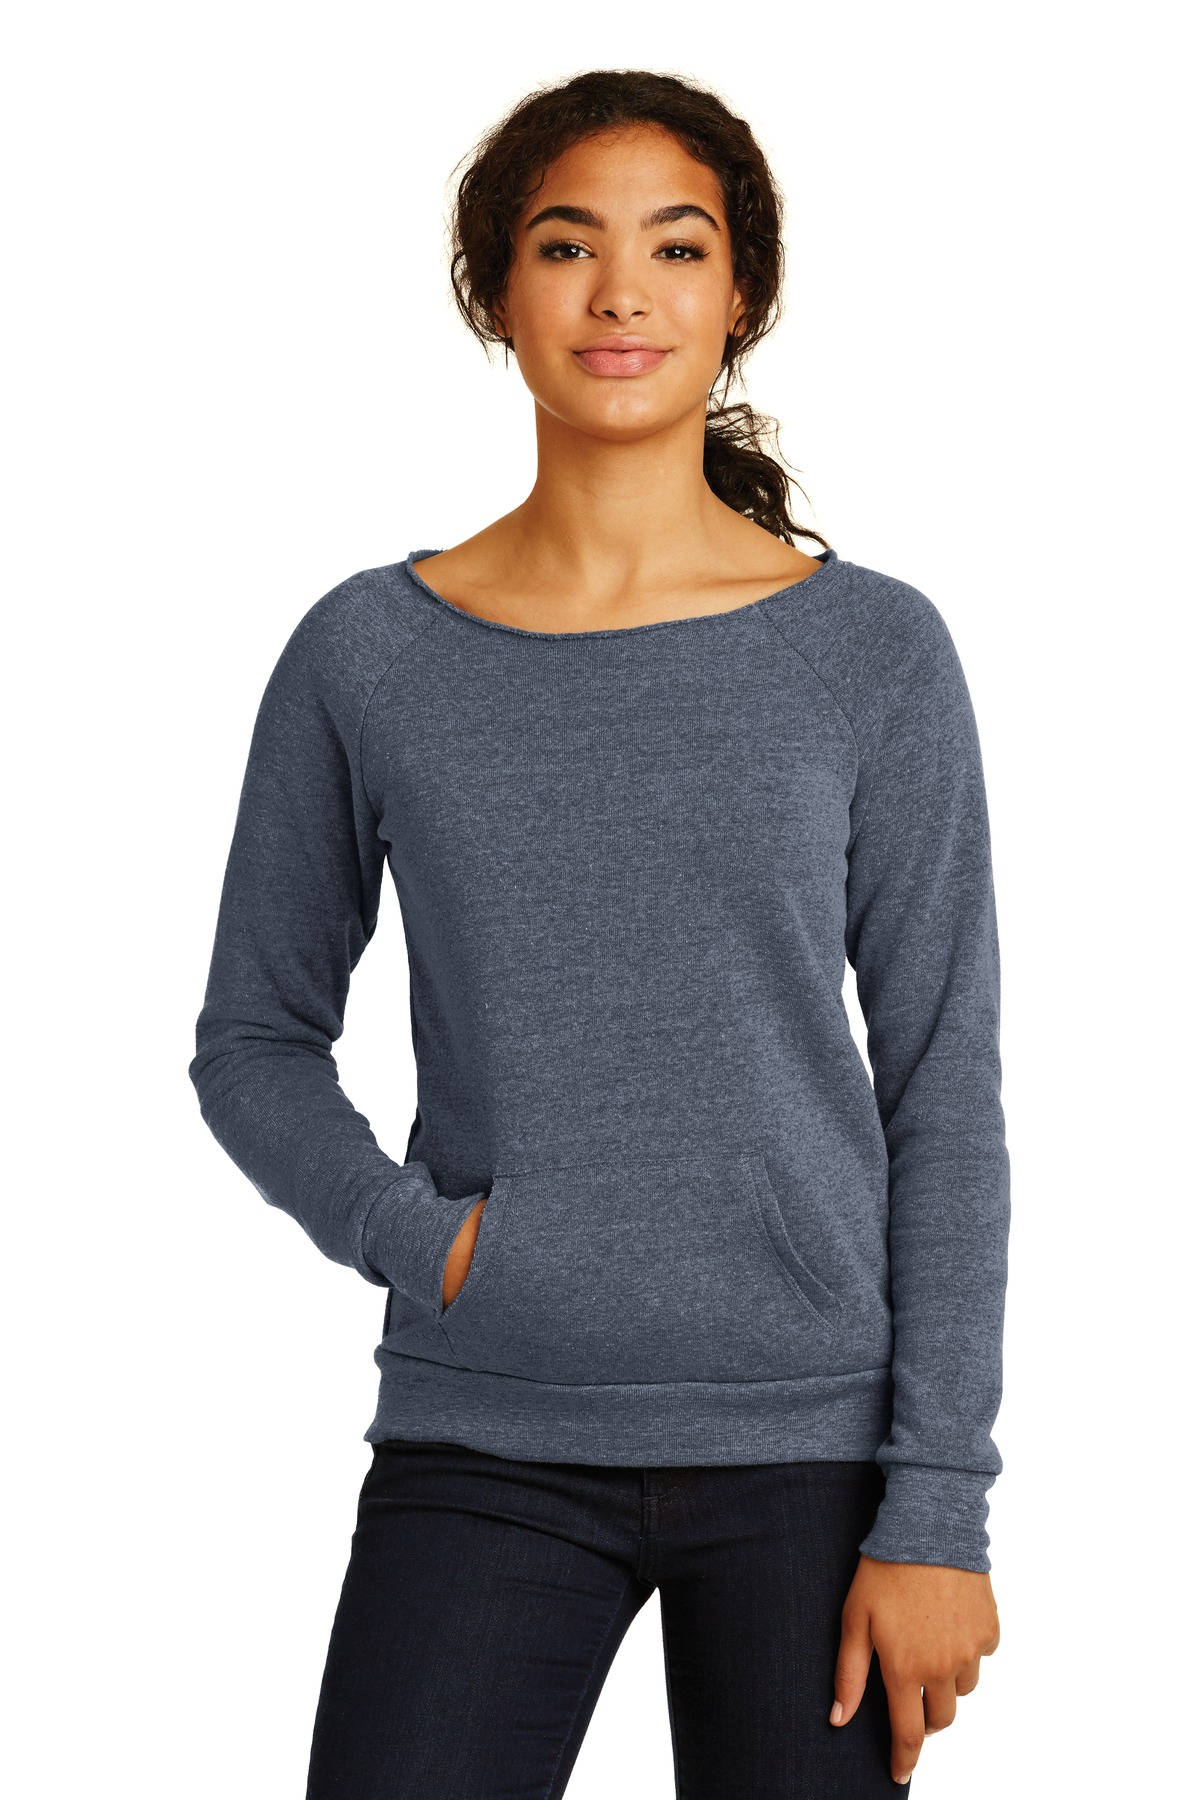 Alternative Embroidered Women's Off the Shoulder Eco-Fleece Sweatshirt